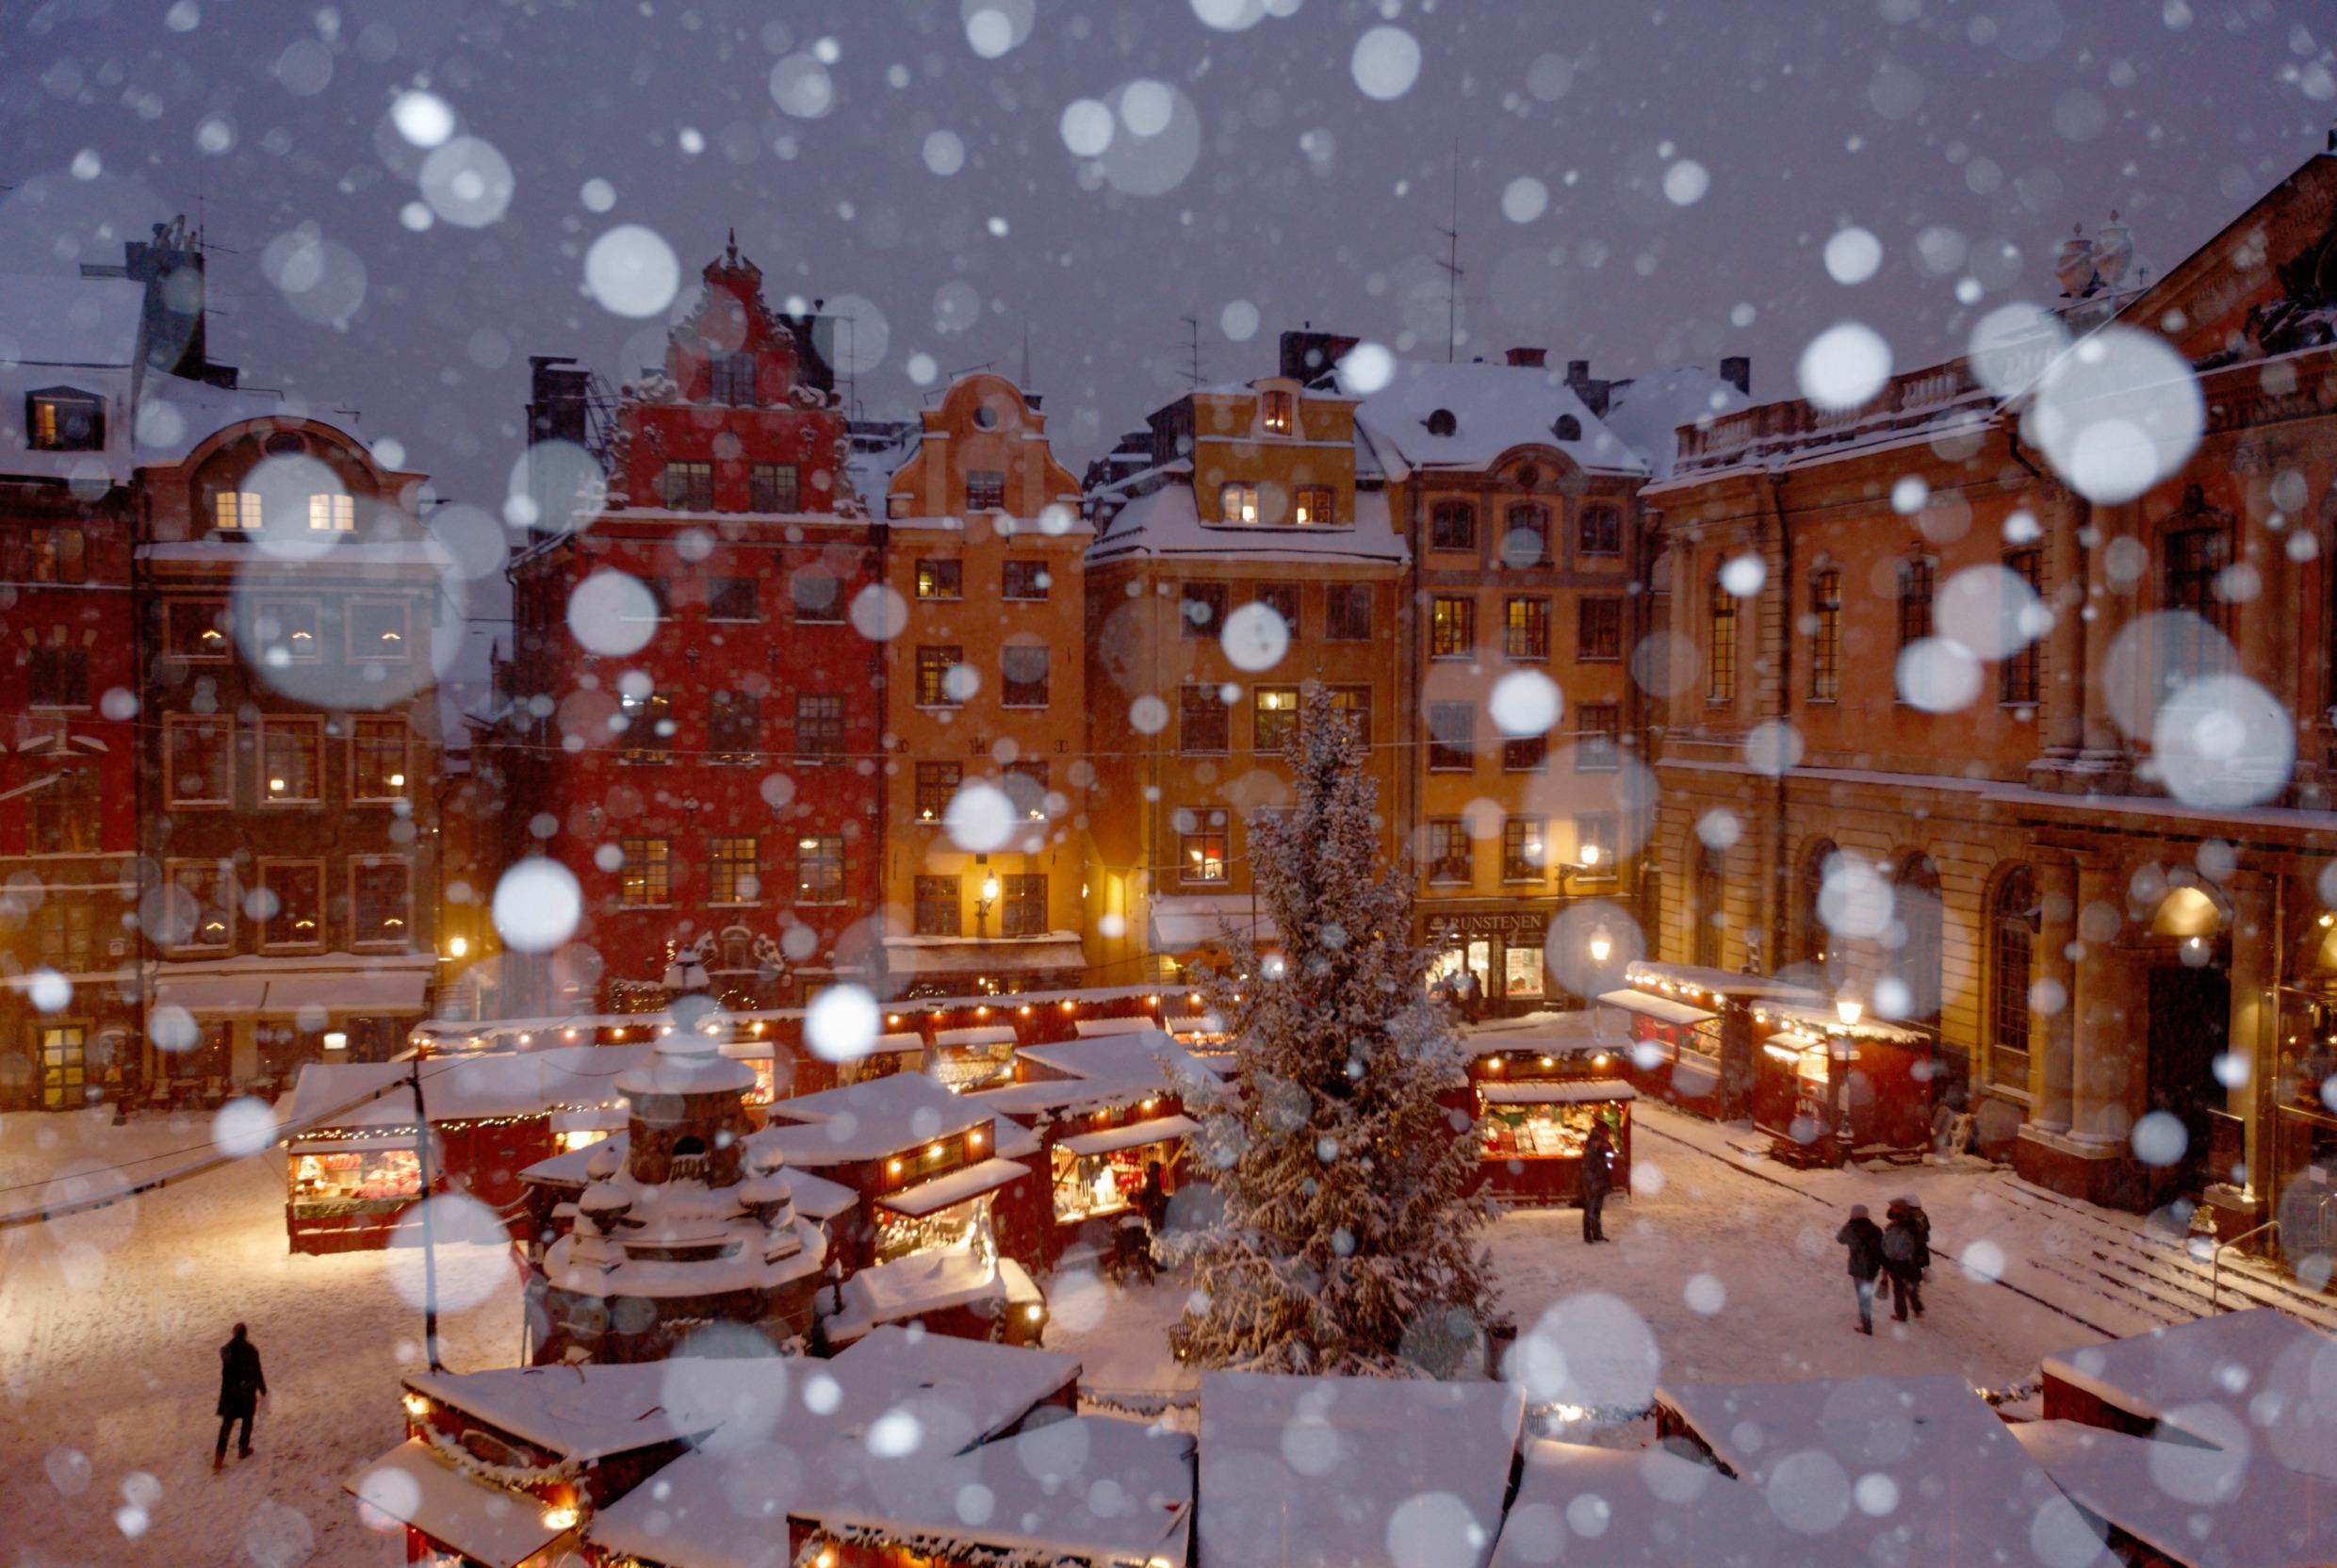 6 Days To Christmas The Most Amazing Christmas Towns Around The World 8 Days To Christmas Days To Christmas 6 Days To Christmas: The Most Amazing Christmas Towns Around The World 6 Days To Christmas The Most Amazing Christmas Towns Around The World 8